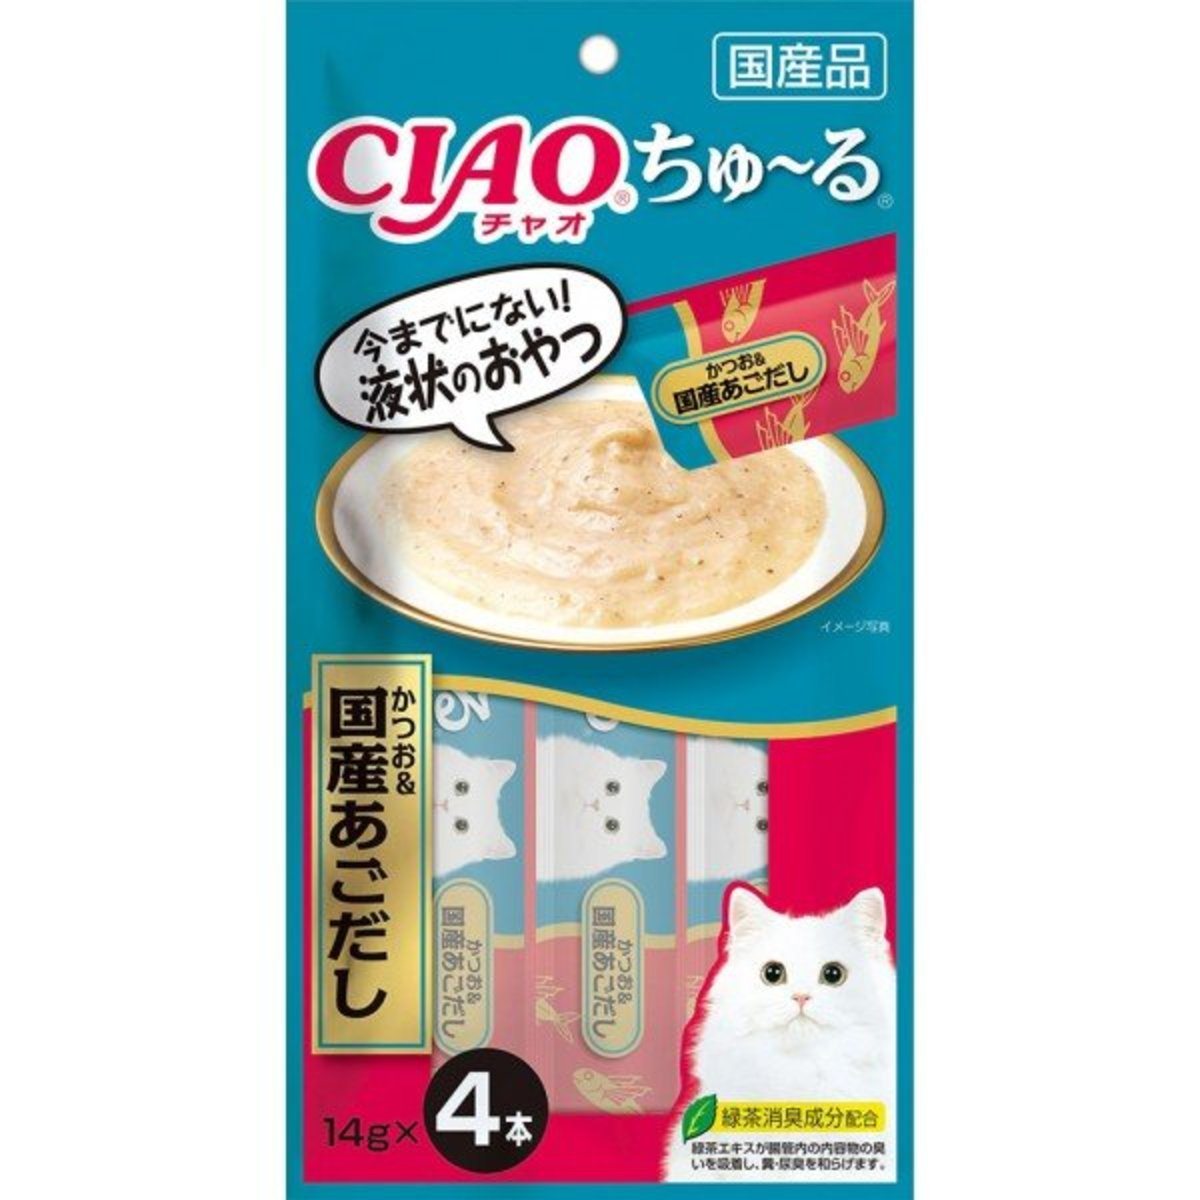 CIAO Churu Tuna & Japenese Flying Fish Puree (14g x 4) #SC-178